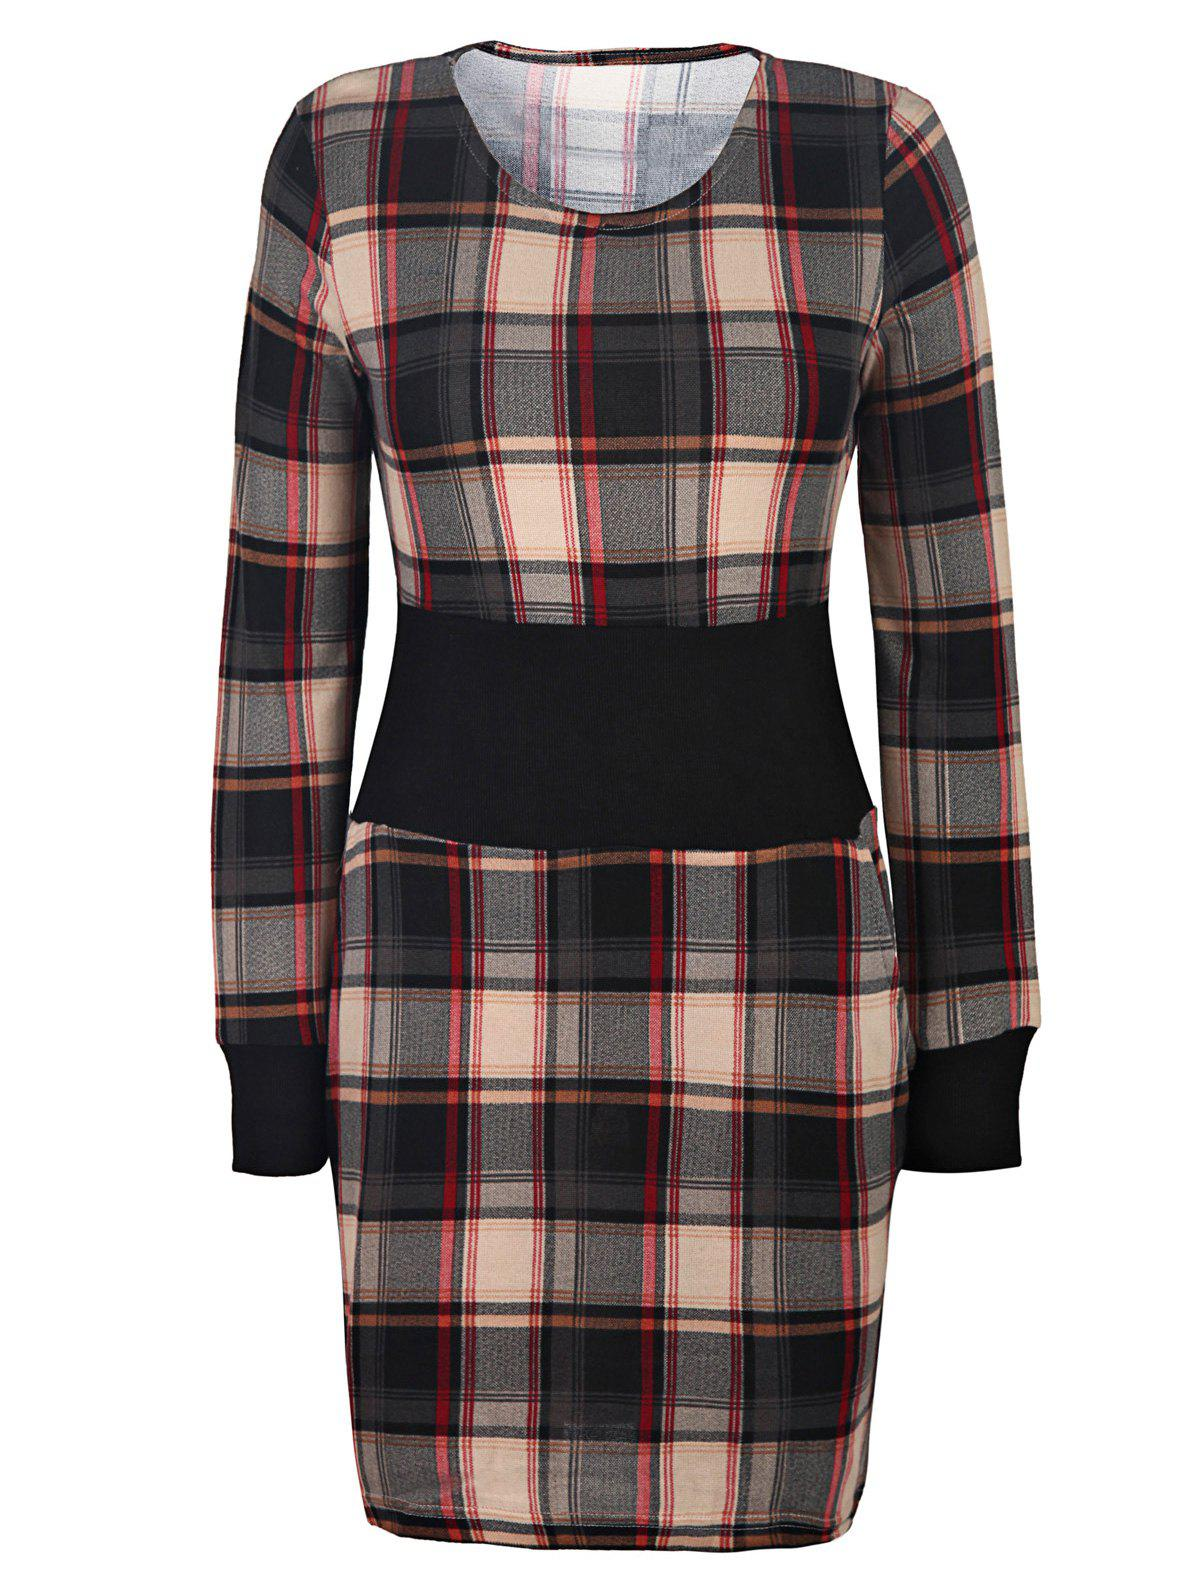 Stylish Scoop Neck Long Sleeve Slimming Gingham Women's Dress - BROWN S